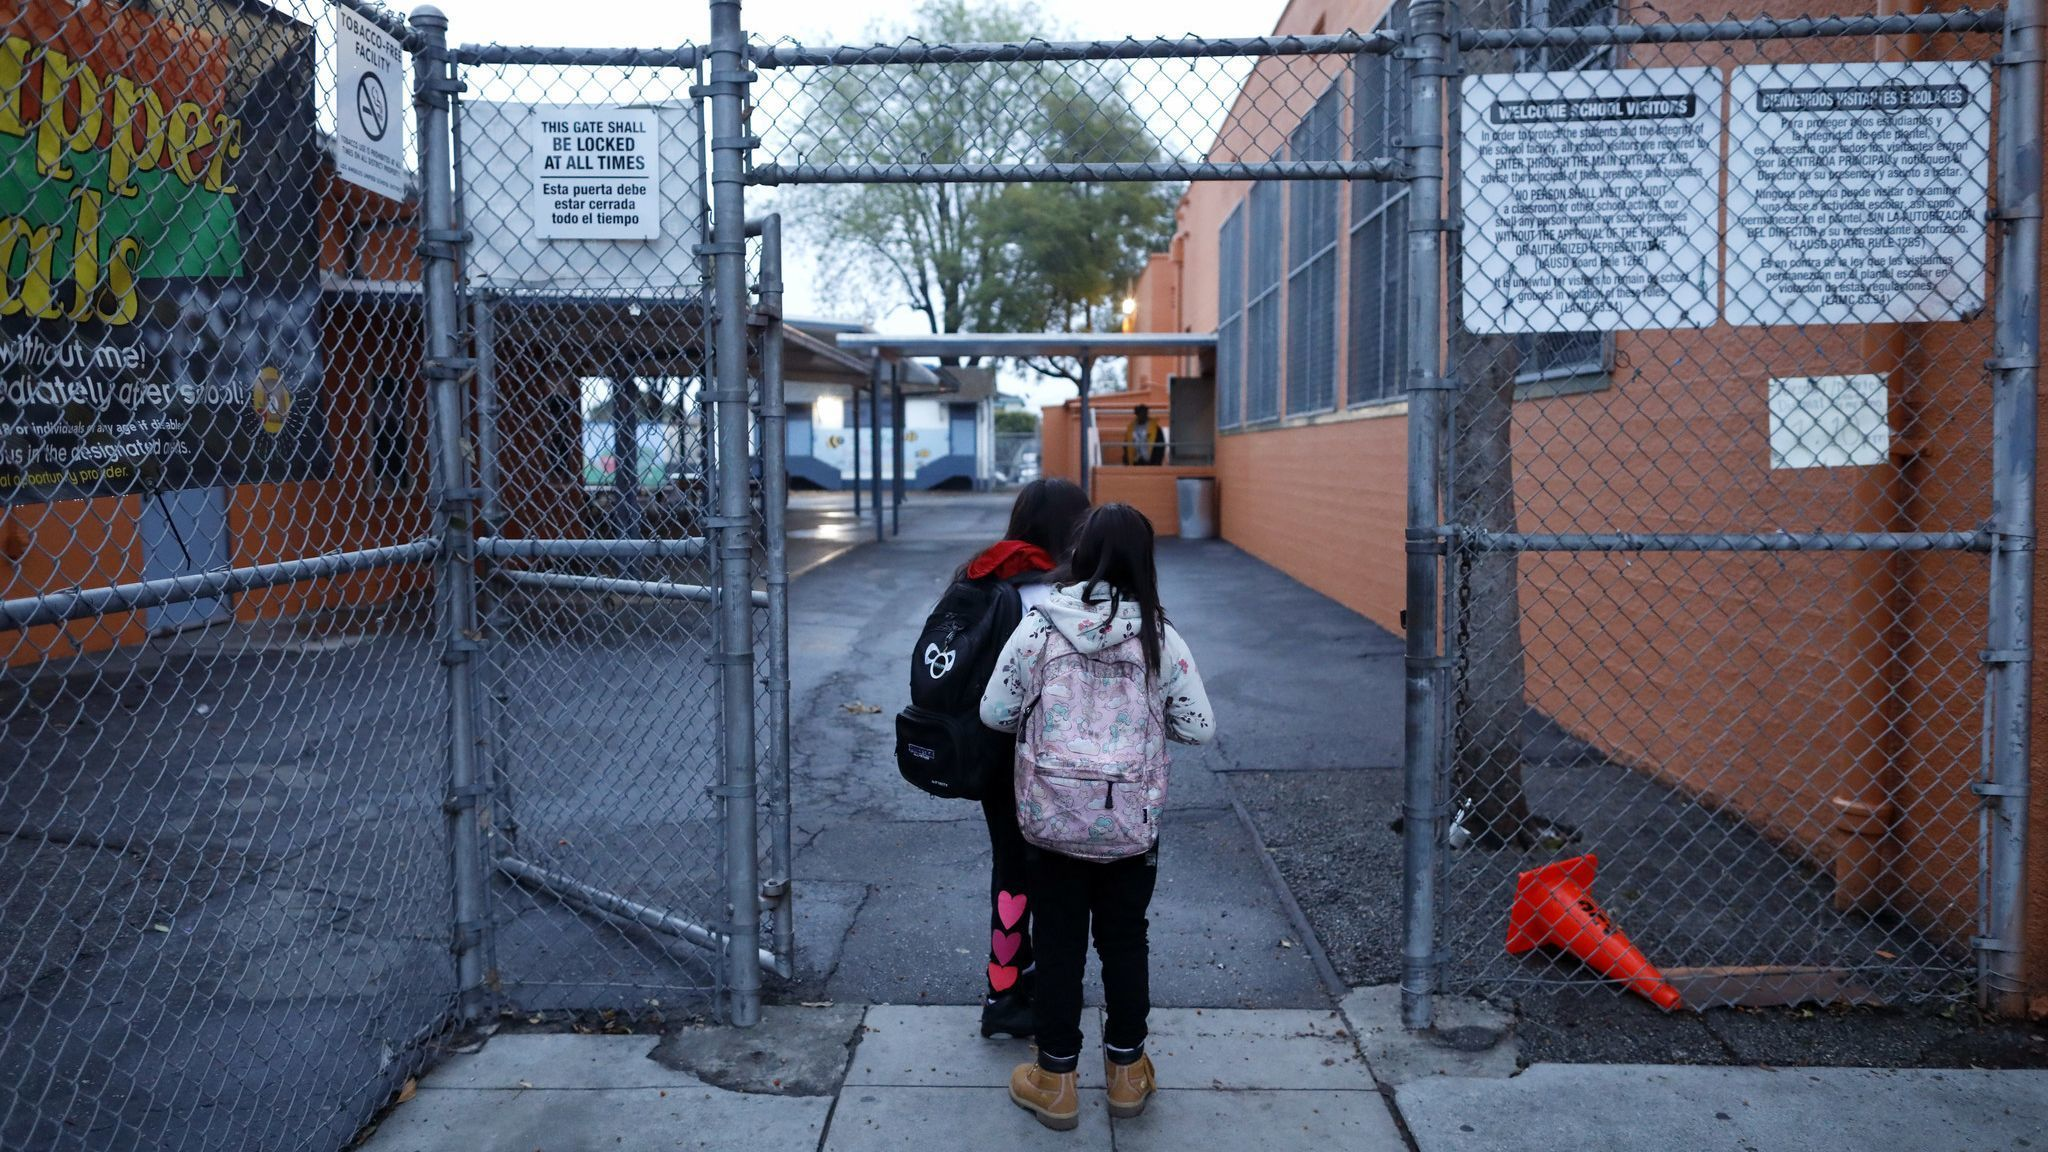 LOS ANGELES, CALIF. — TUESDAY, JANUARY 15, 2019: Students wait to enter Trinity Elementary while LA